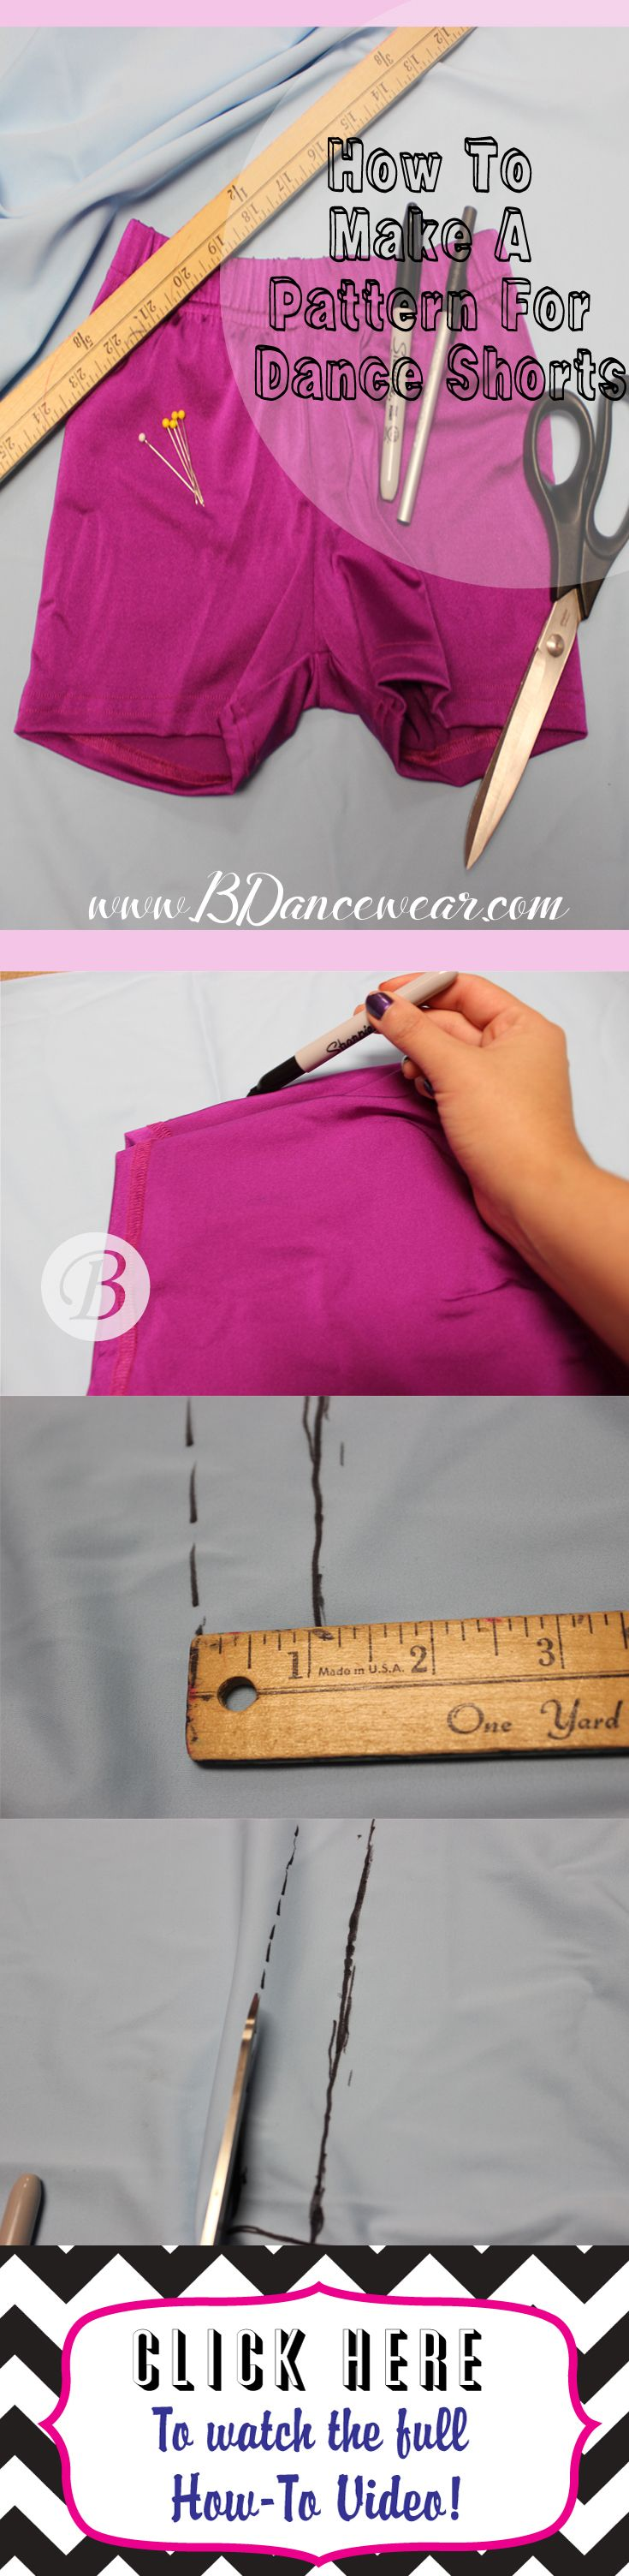 How to Make a Pattern for Dance Shorts | DIY Dance Costume How To\'s ...